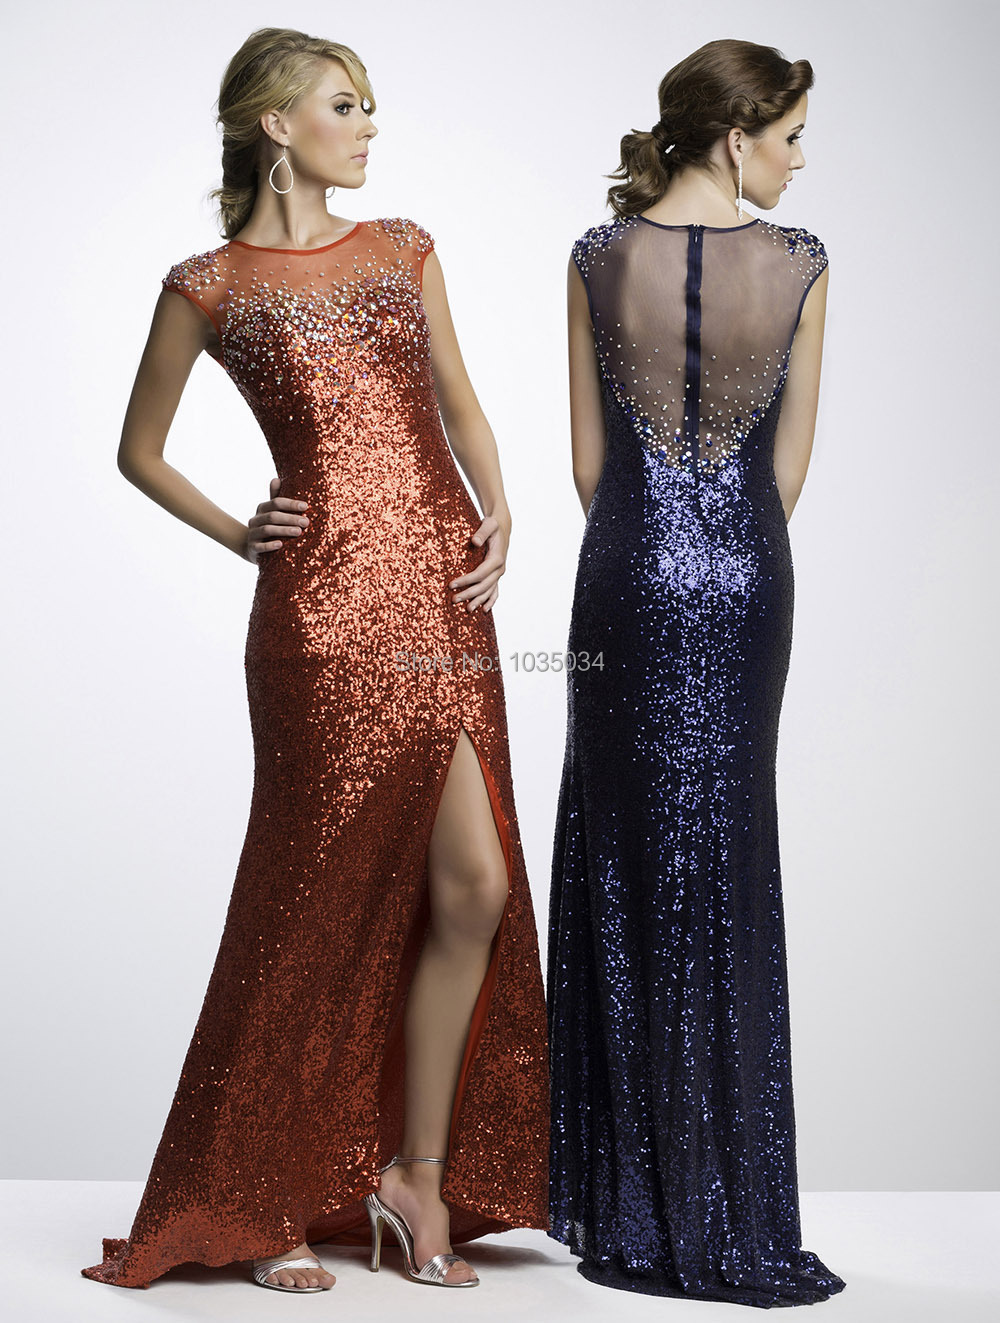 High Quality Full Sequin Dresses-Buy Cheap Full Sequin Dresses ...